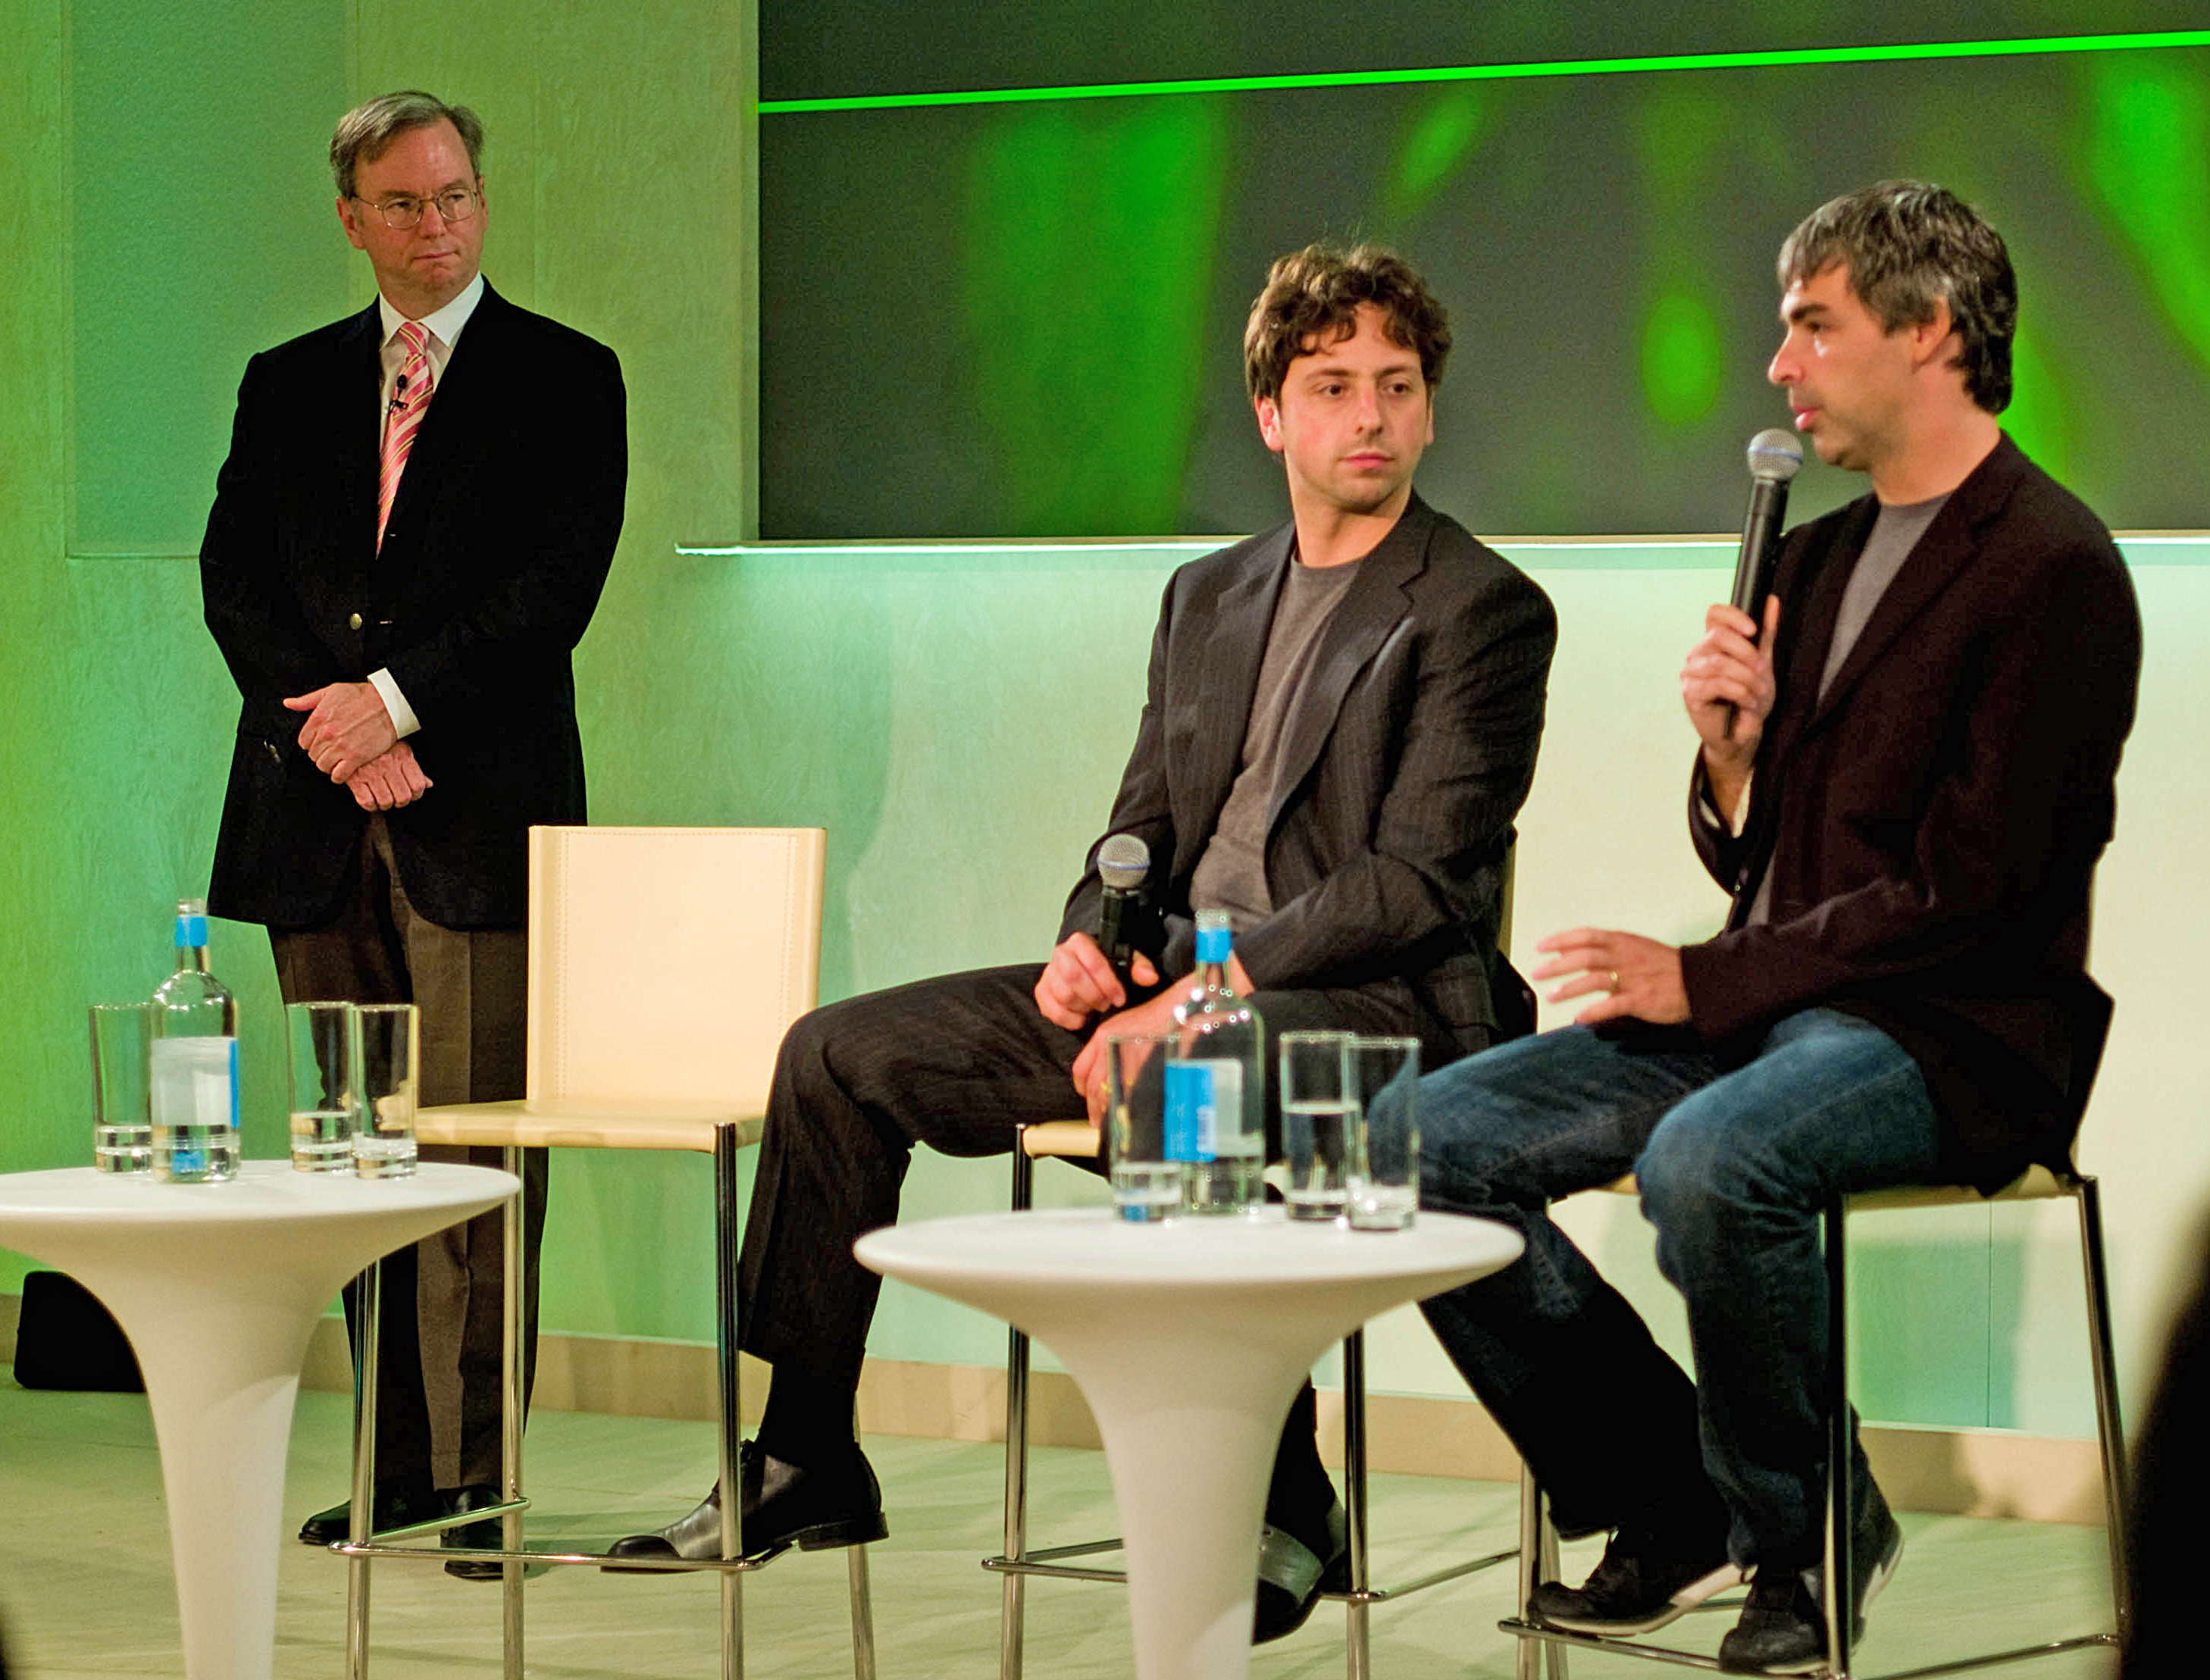 8 Facts about Larry Page and Sergey Brin